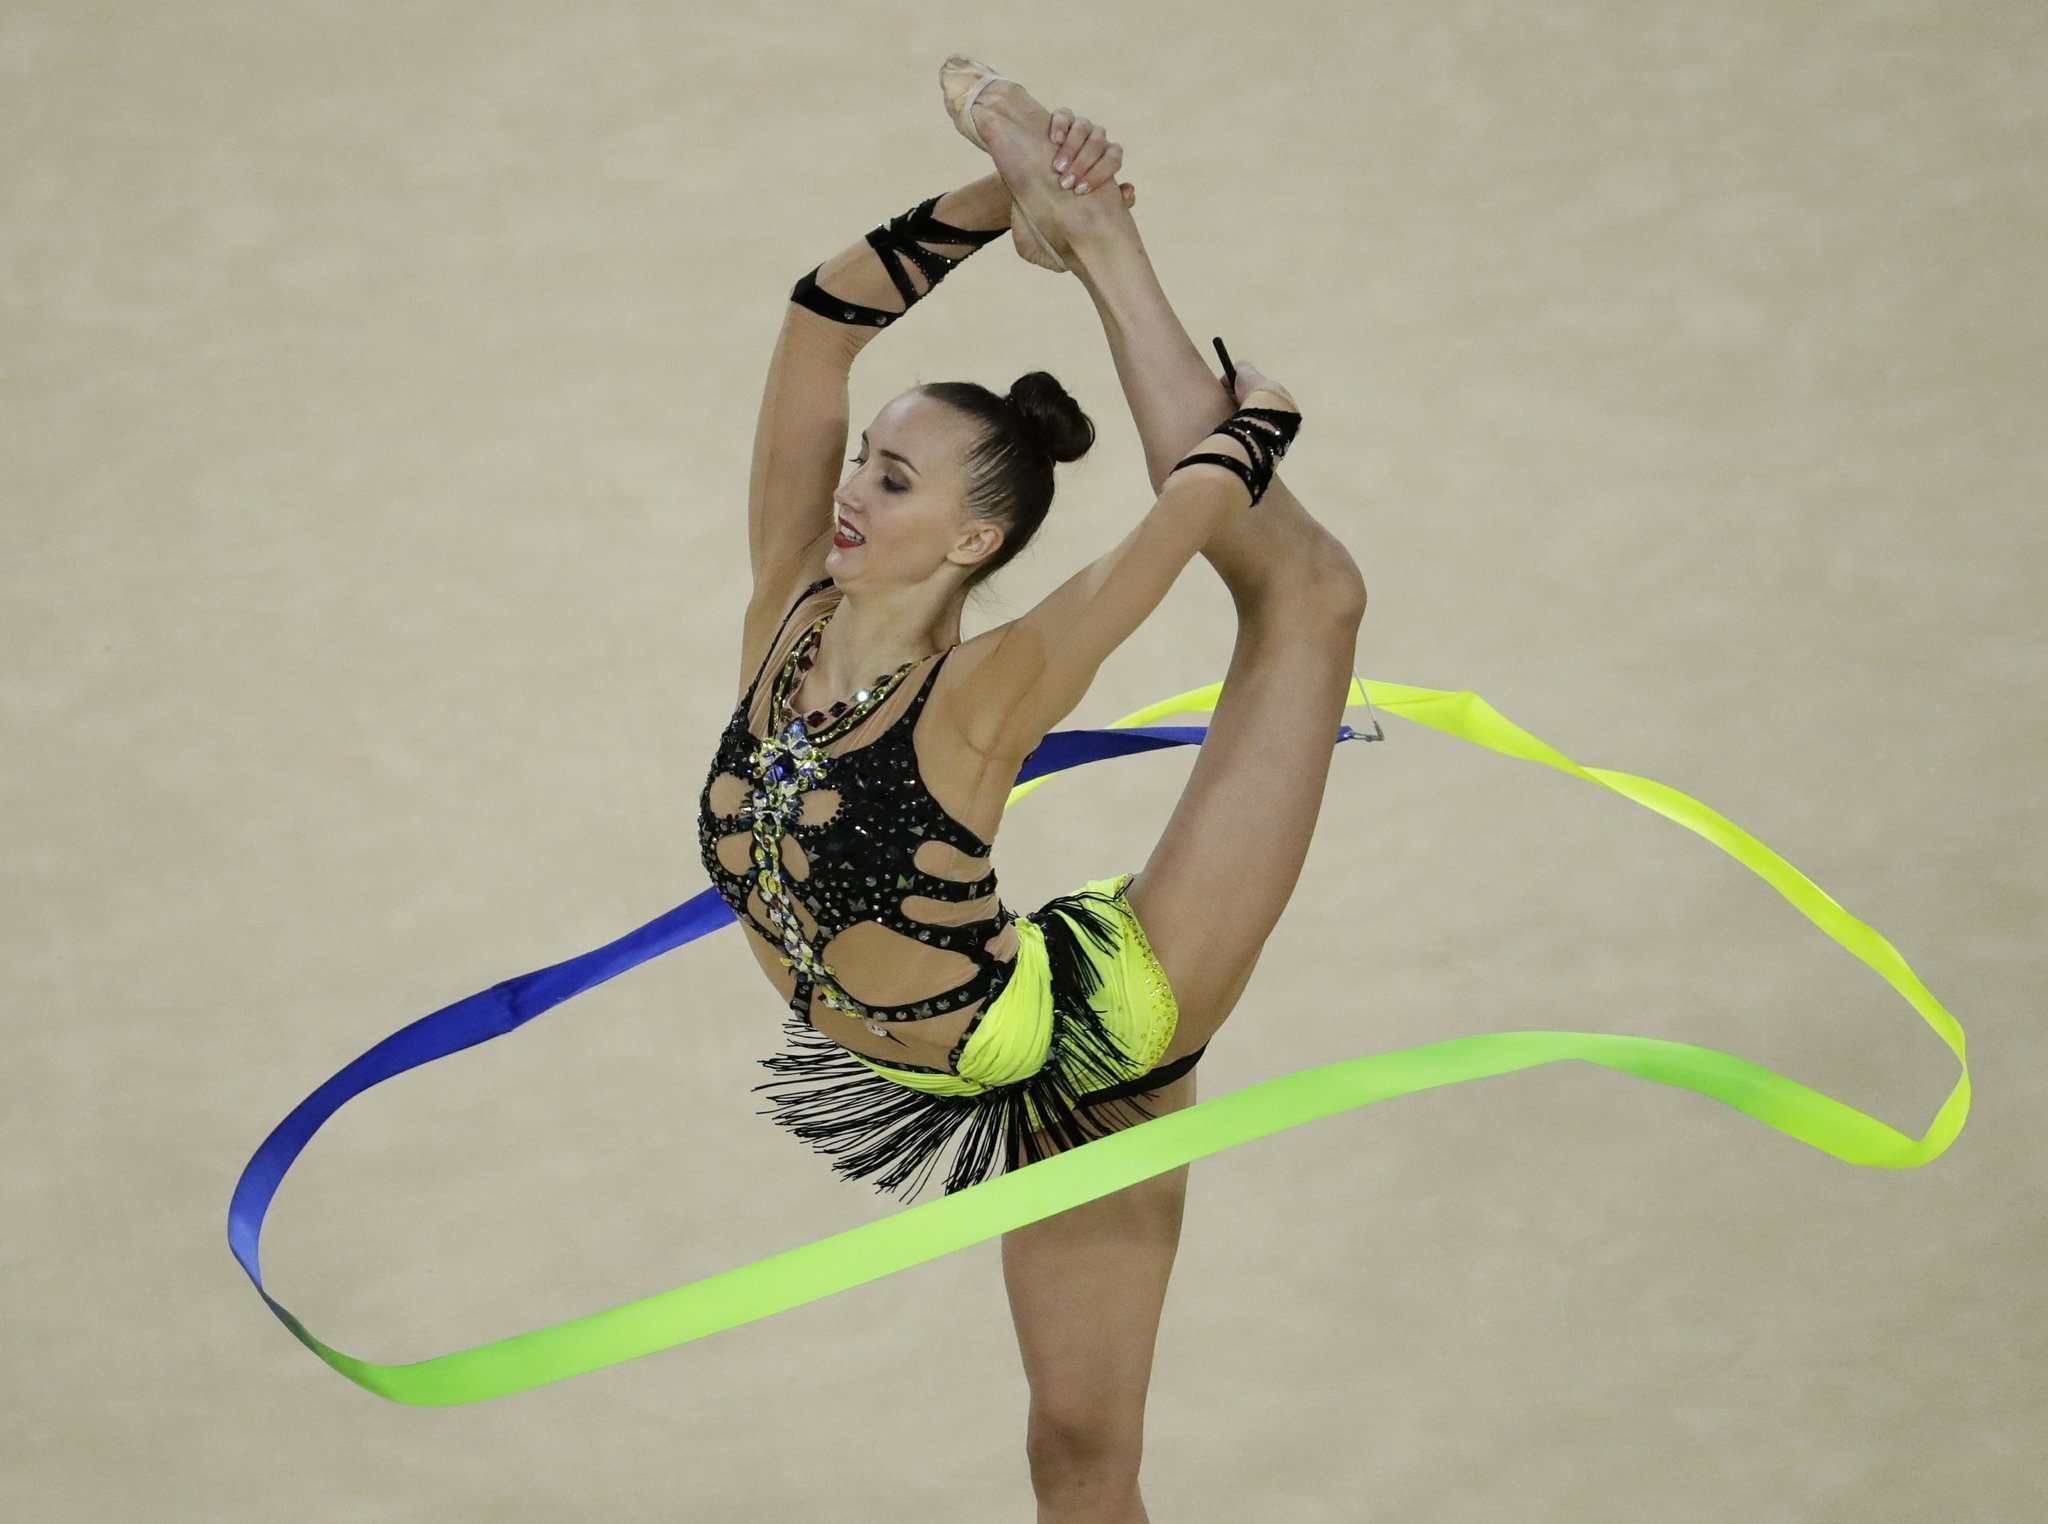 mamun tops world champ kudryavtseva in rhythmic gymnastics the san